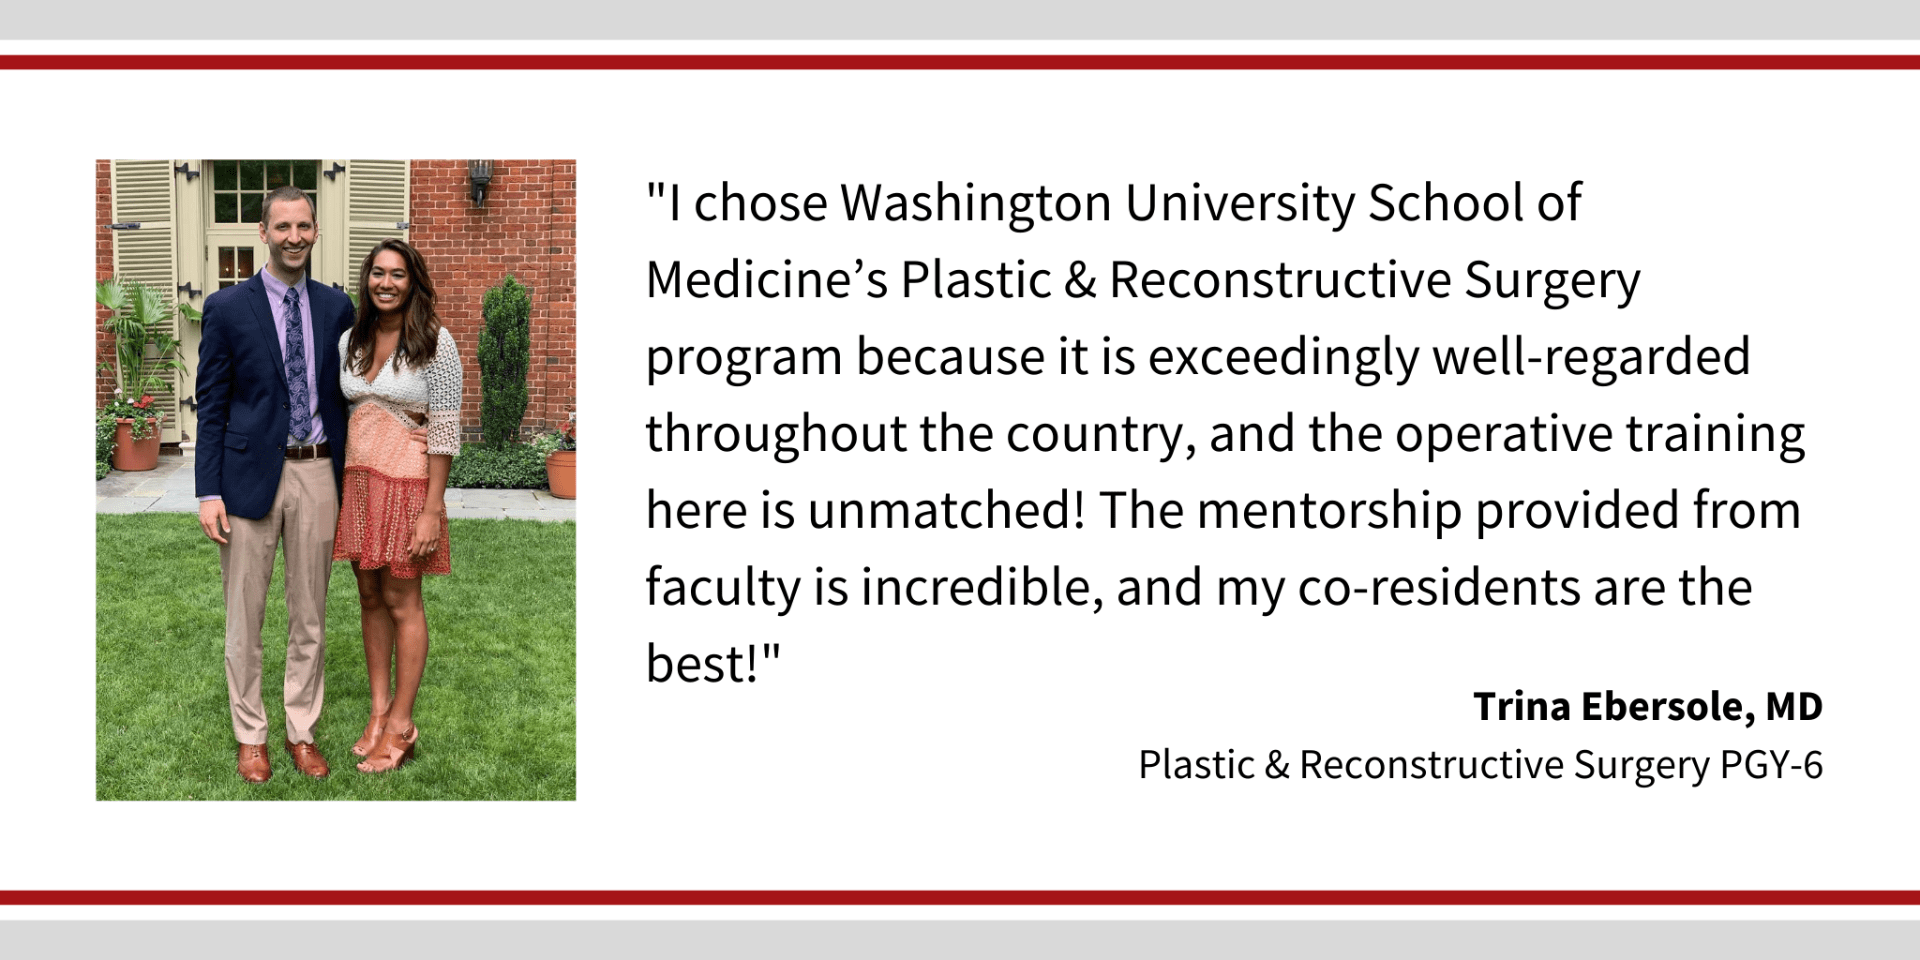 "When asked, ""Why did you choose Washington University,"" Tina Ebersole, PGY-6 plastic and reconstructive surgery resident says, ""I chose Washington University School of Medicine's Plastic & Reconstructive Surgery program because it is exceedingly well-regarded throughout the country, and the operative training here is unmatched! The mentorship provided from faculty is incredible, and my co-residents are the best!"""